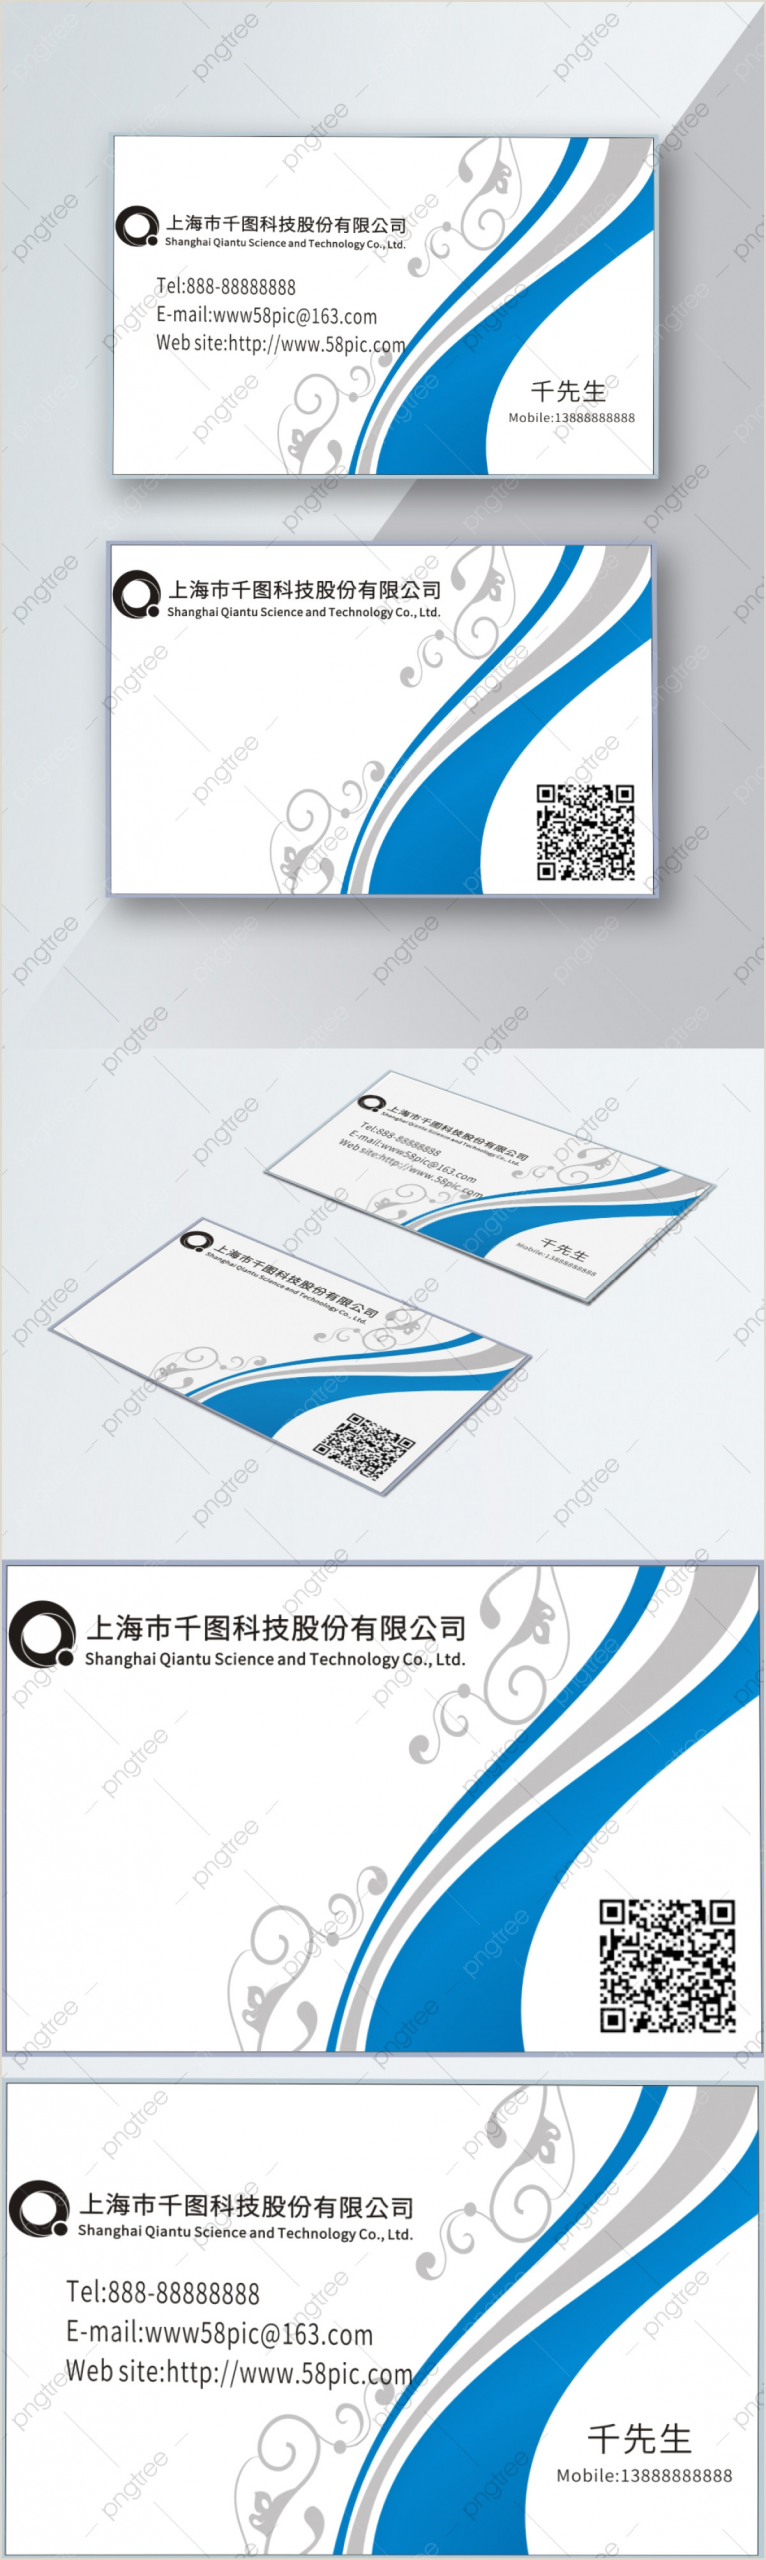 Business Cards That Play Music Music Business Card Png Vector And Psd Files